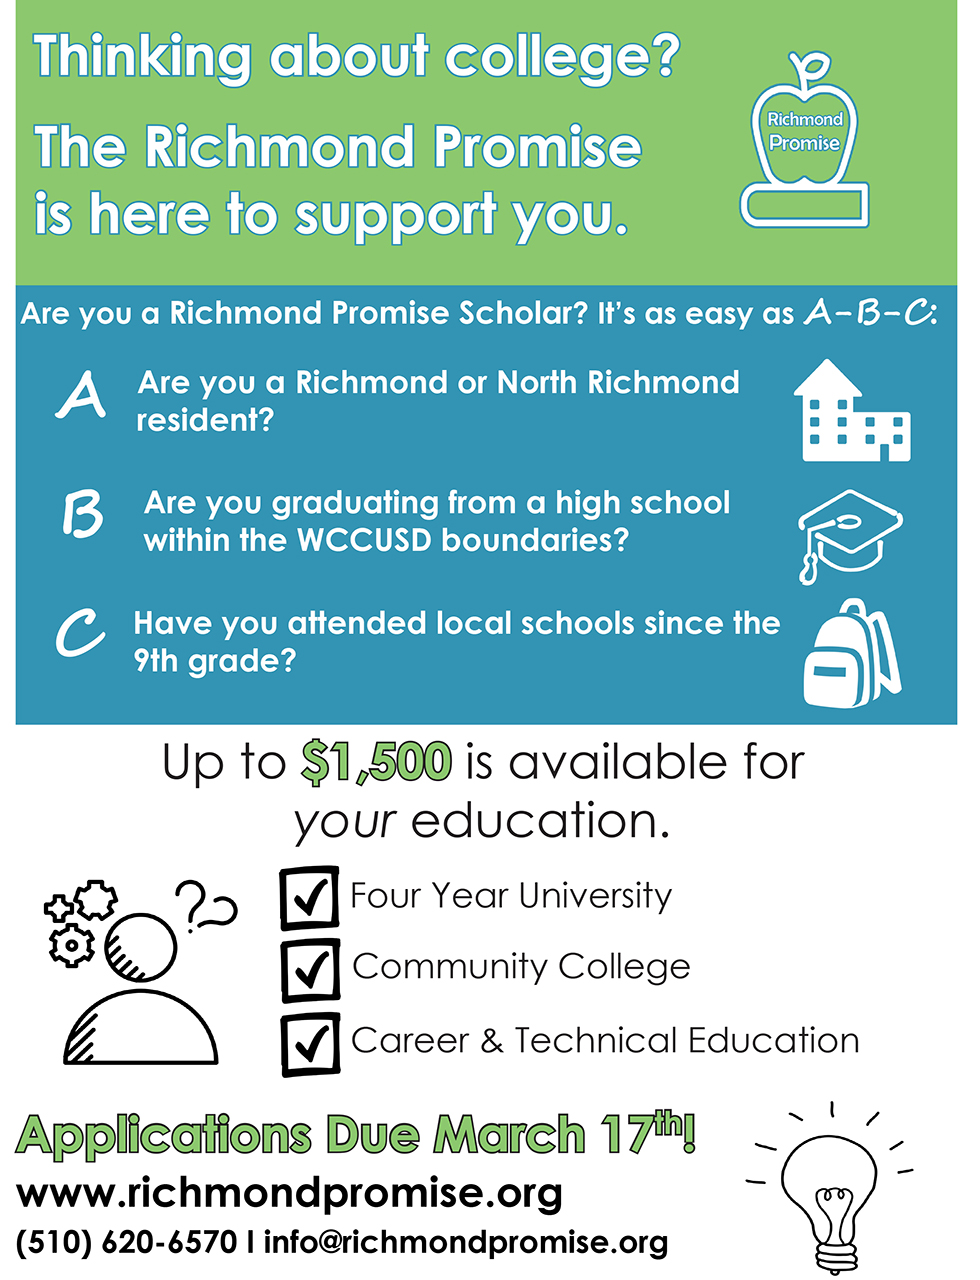 richmond_promise_school_poster_and_handout-1_(s).jpg